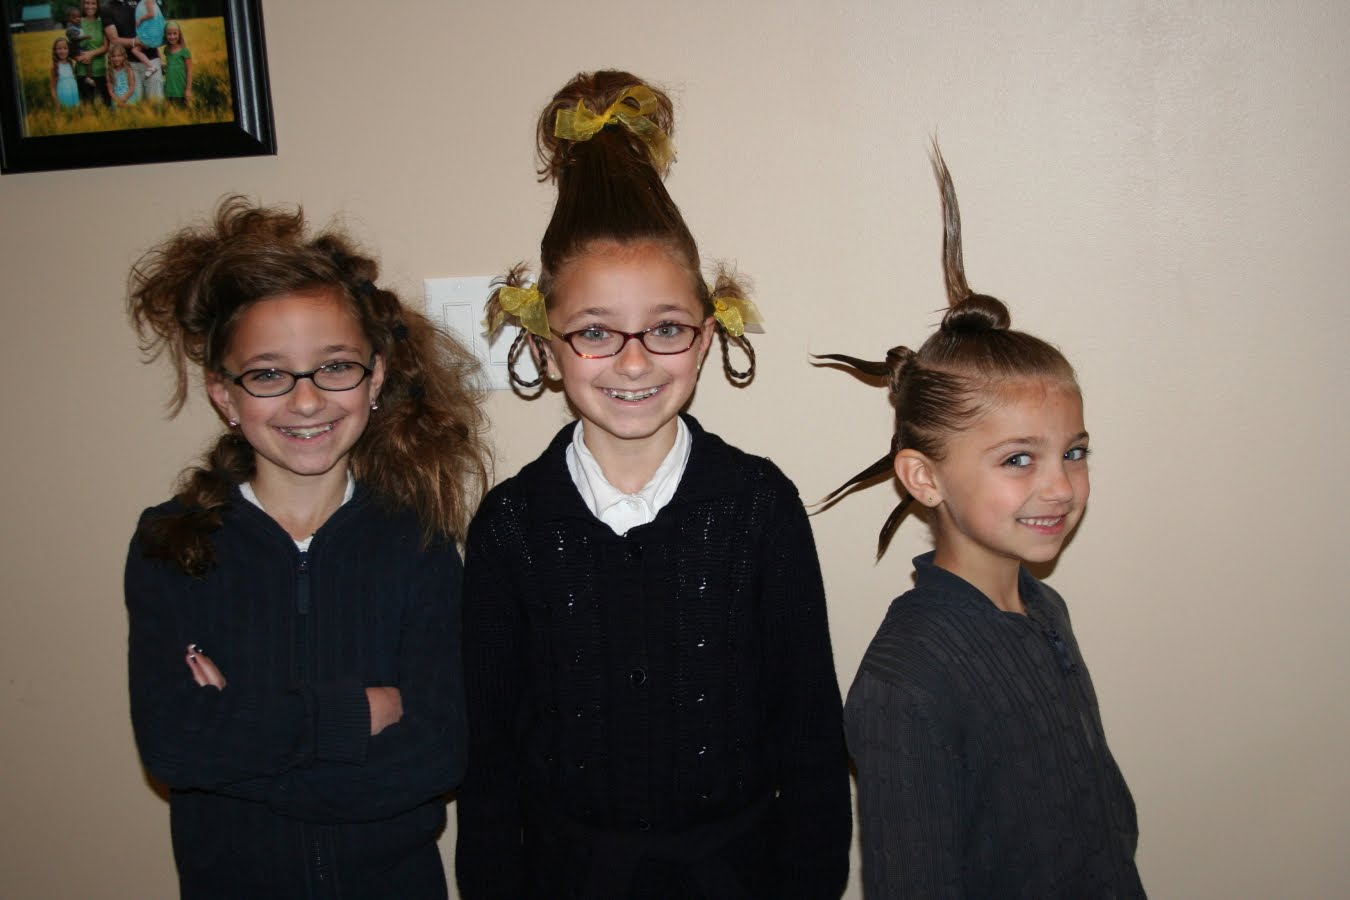 Cute easy hairstyles that kids can do - This Past Monday Was Crazy Hair Day At The Kids Charter School You Can See A Picture Of The Hairstyles We Came Up With Above I Have Some Pretty Good Ones